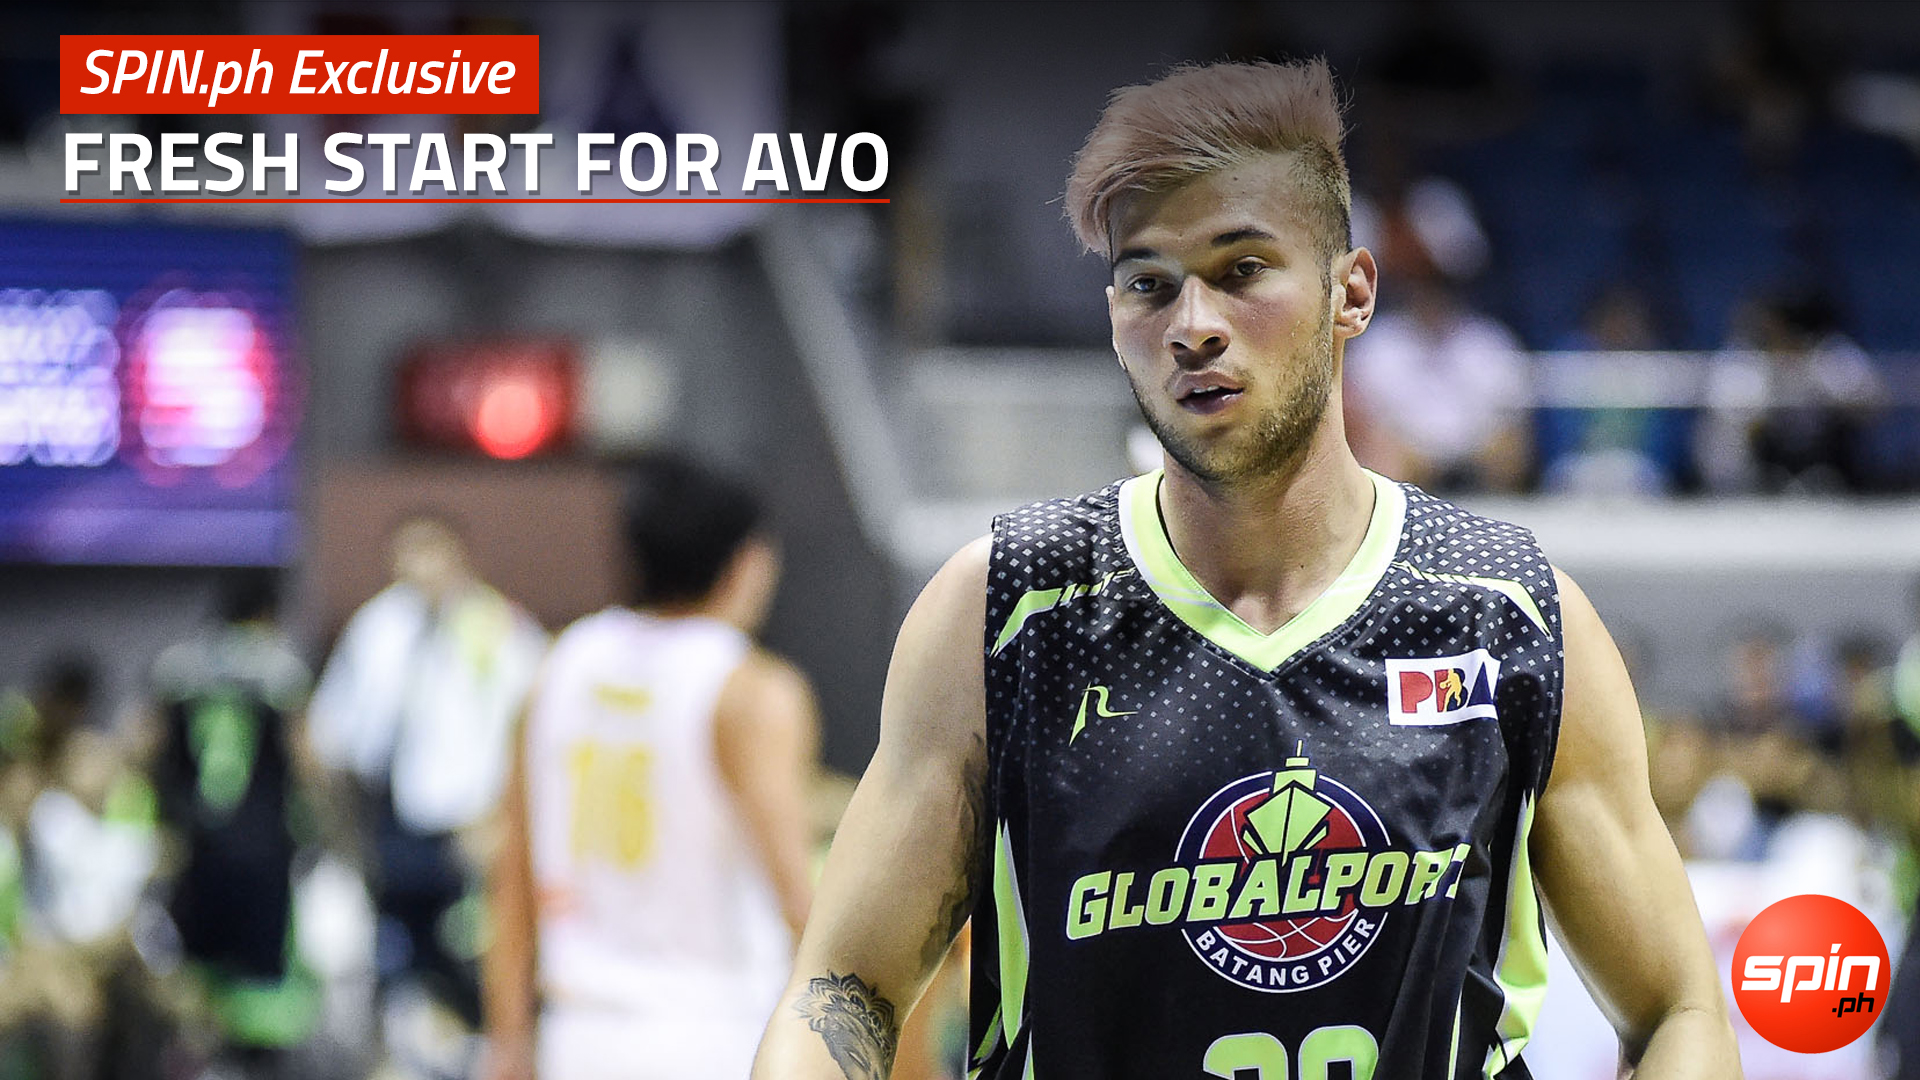 SPIN.ph Exclusive: Fresh start for AVO